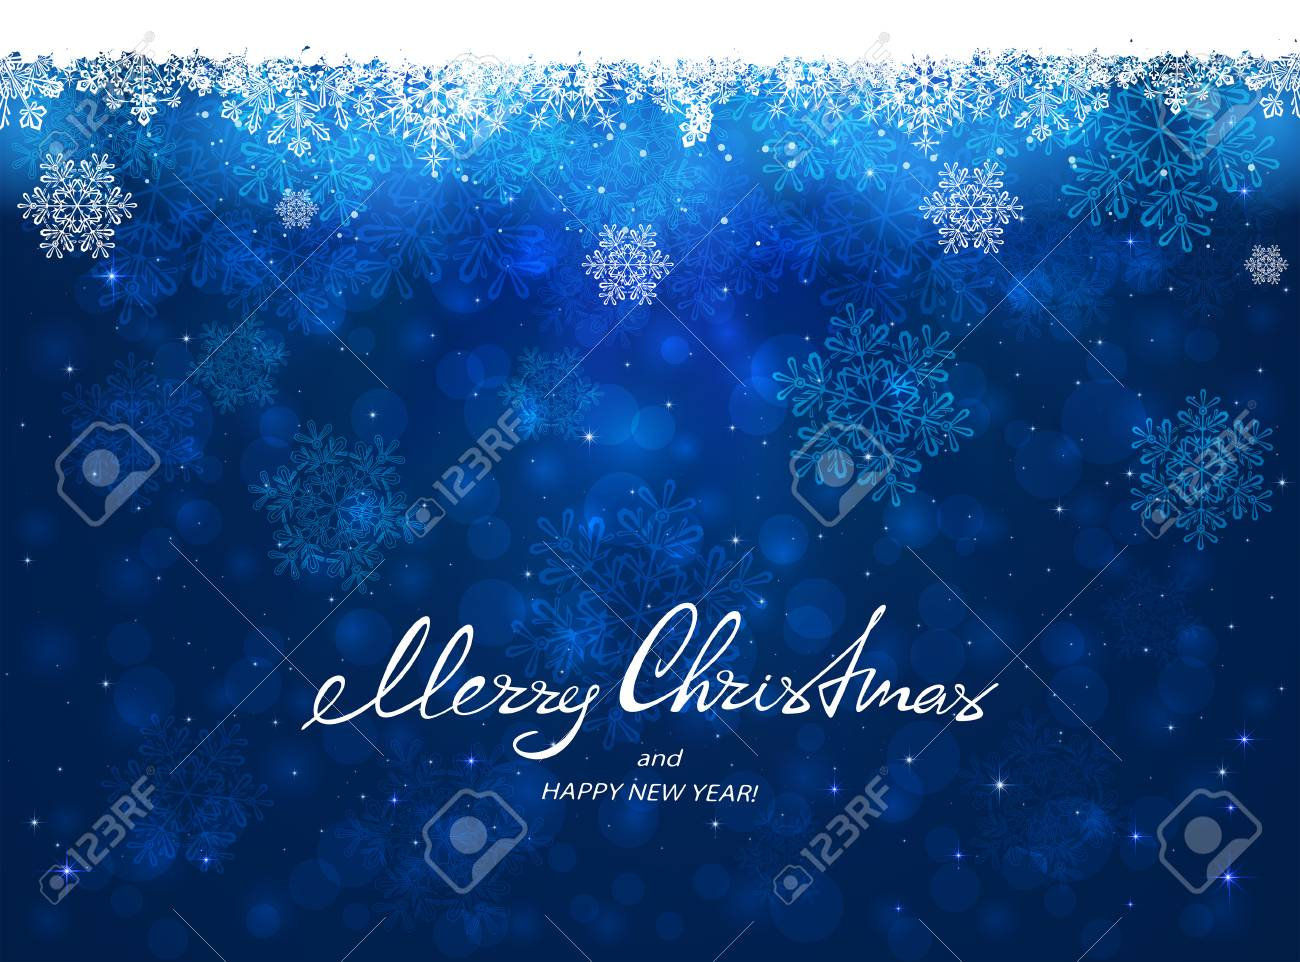 text merry christmas and happy new year on blue background with snowflakes illustration stock